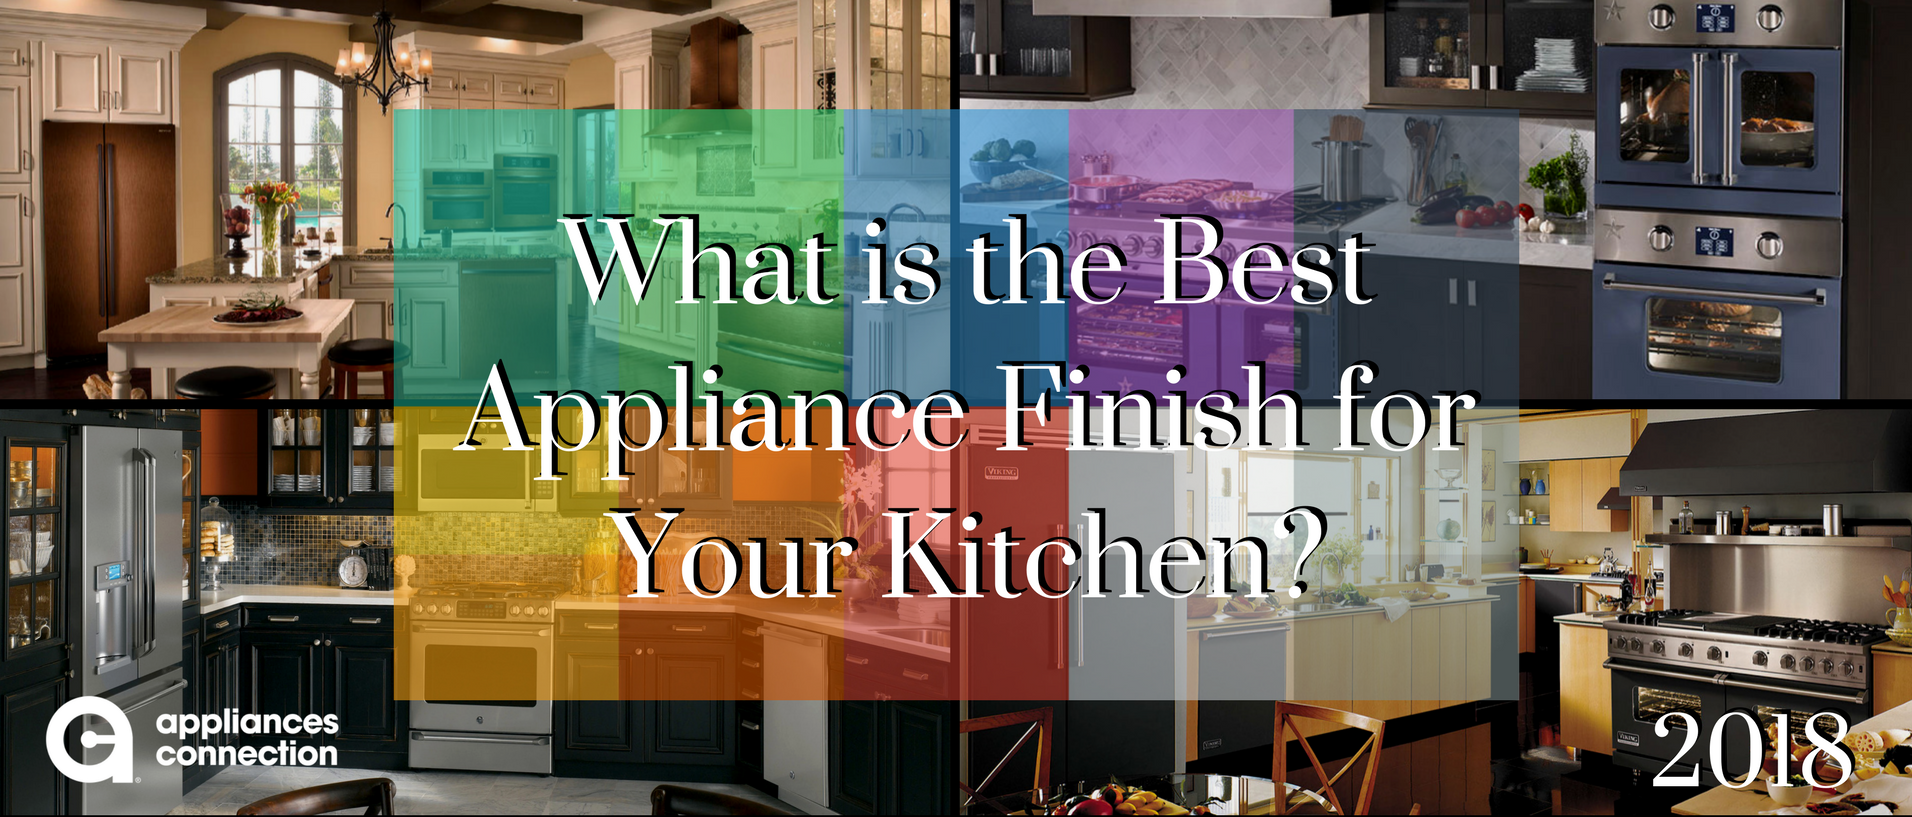 1168 what is the best appliance finish for your kitchen 2018 bannerpng